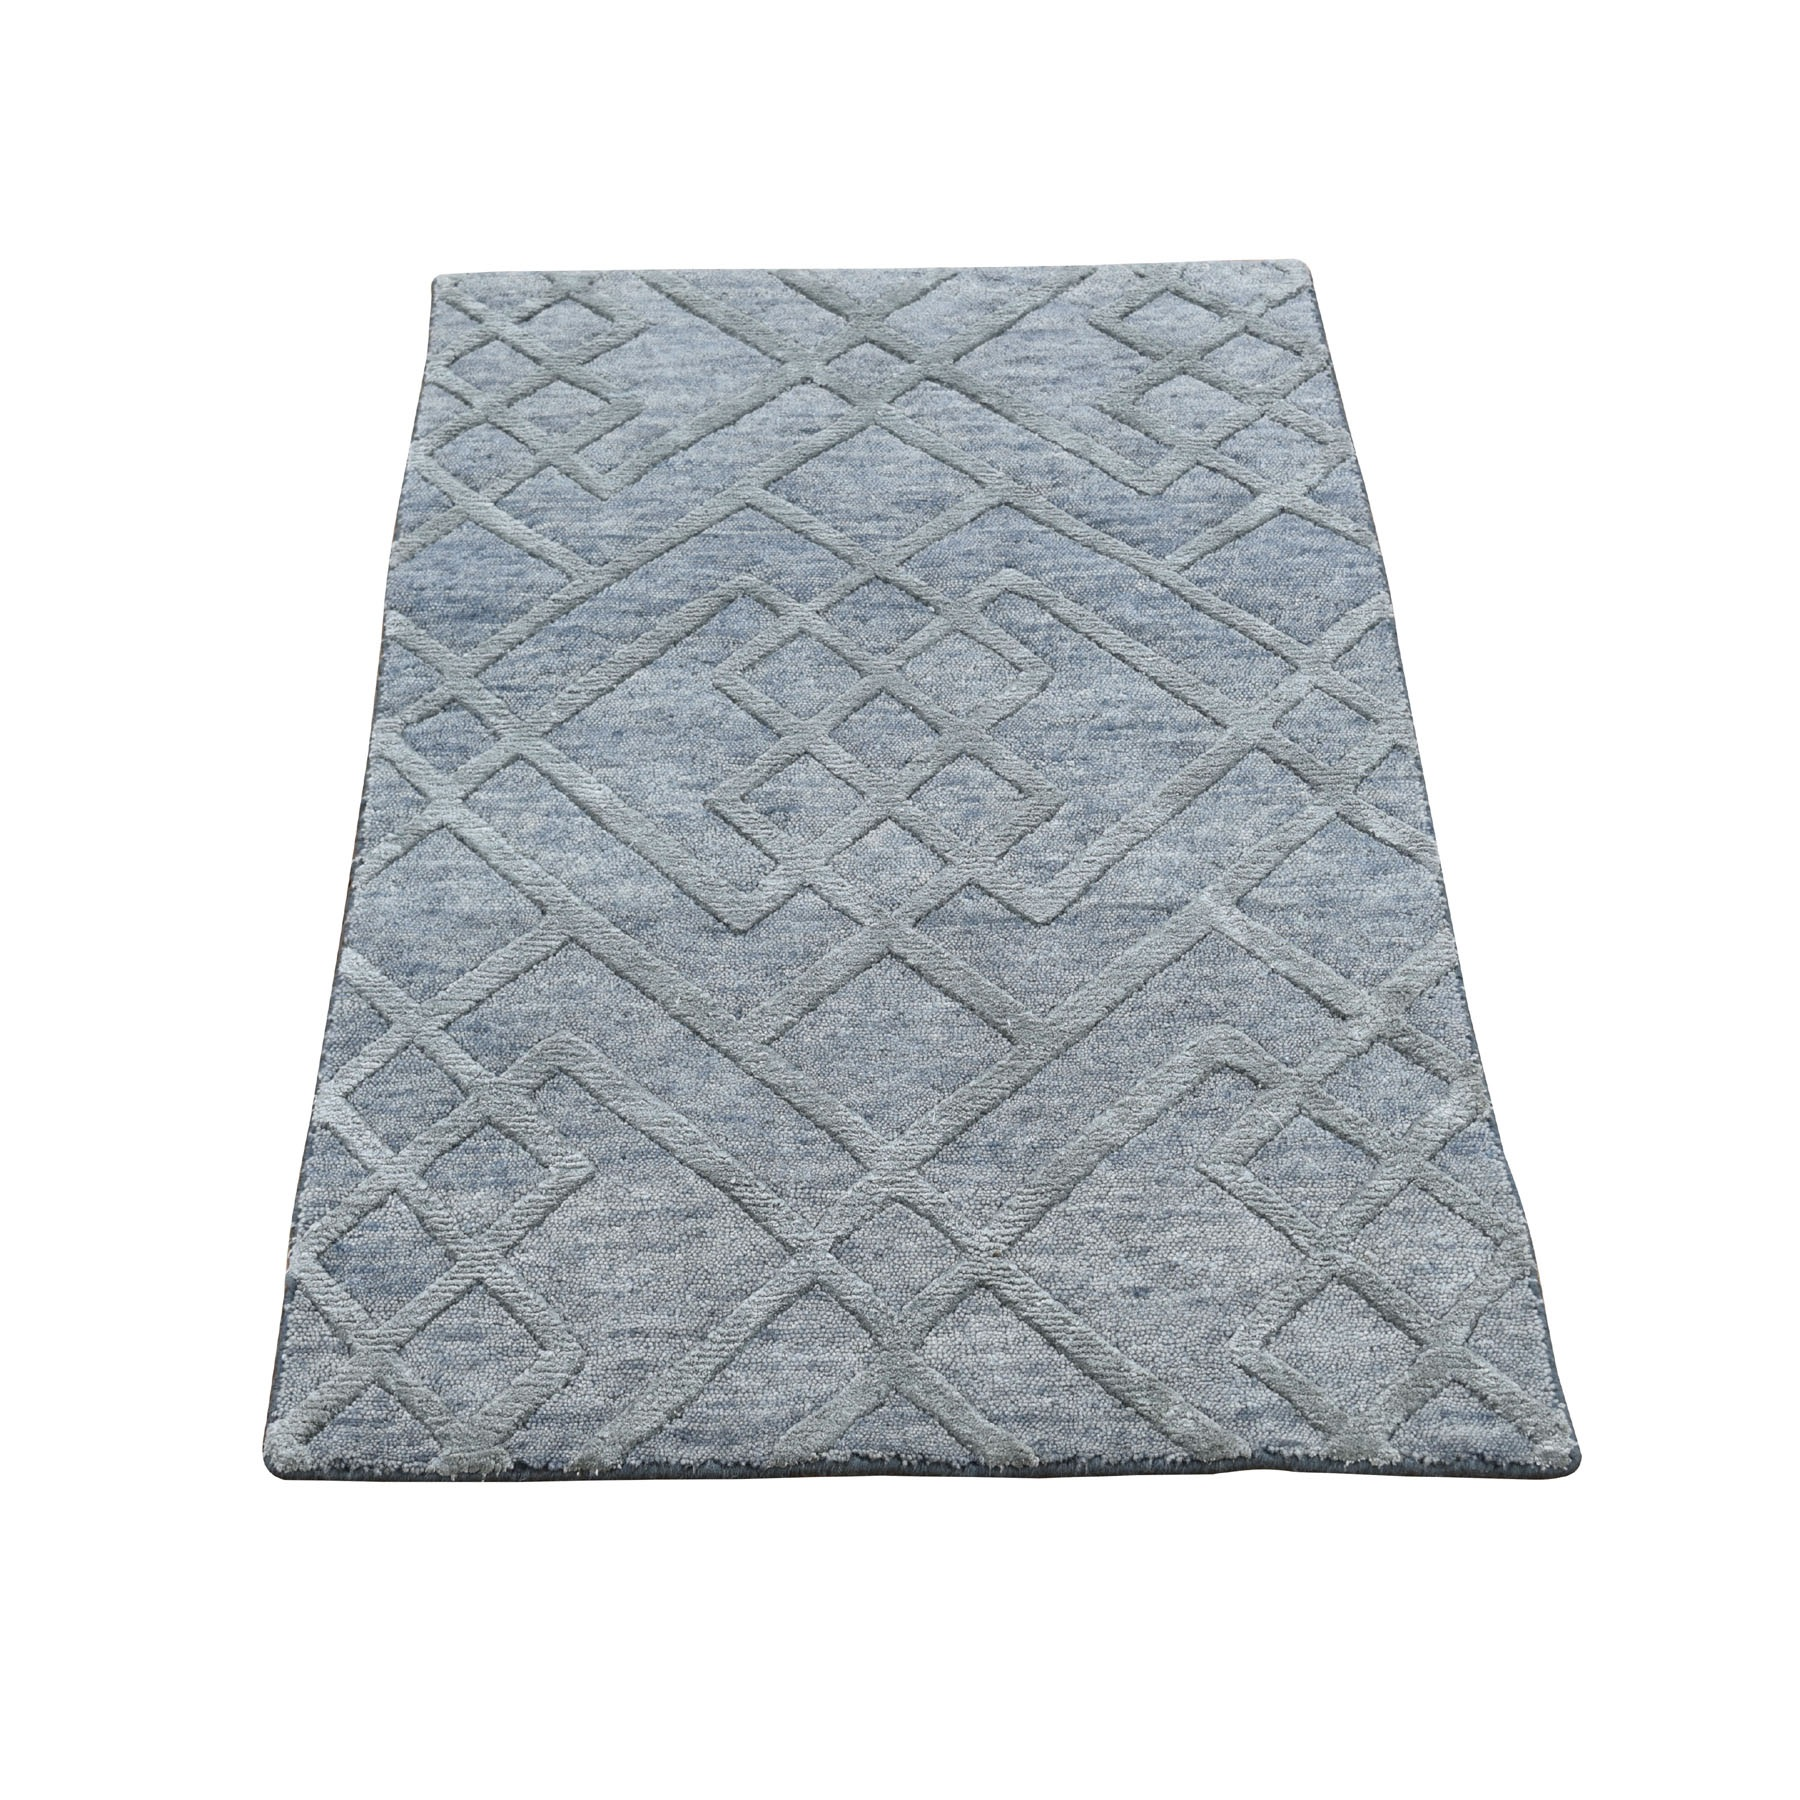 2'x3' Gray Wool And Silk Modern Hi Low Pile hand Knotted Oriental Rug